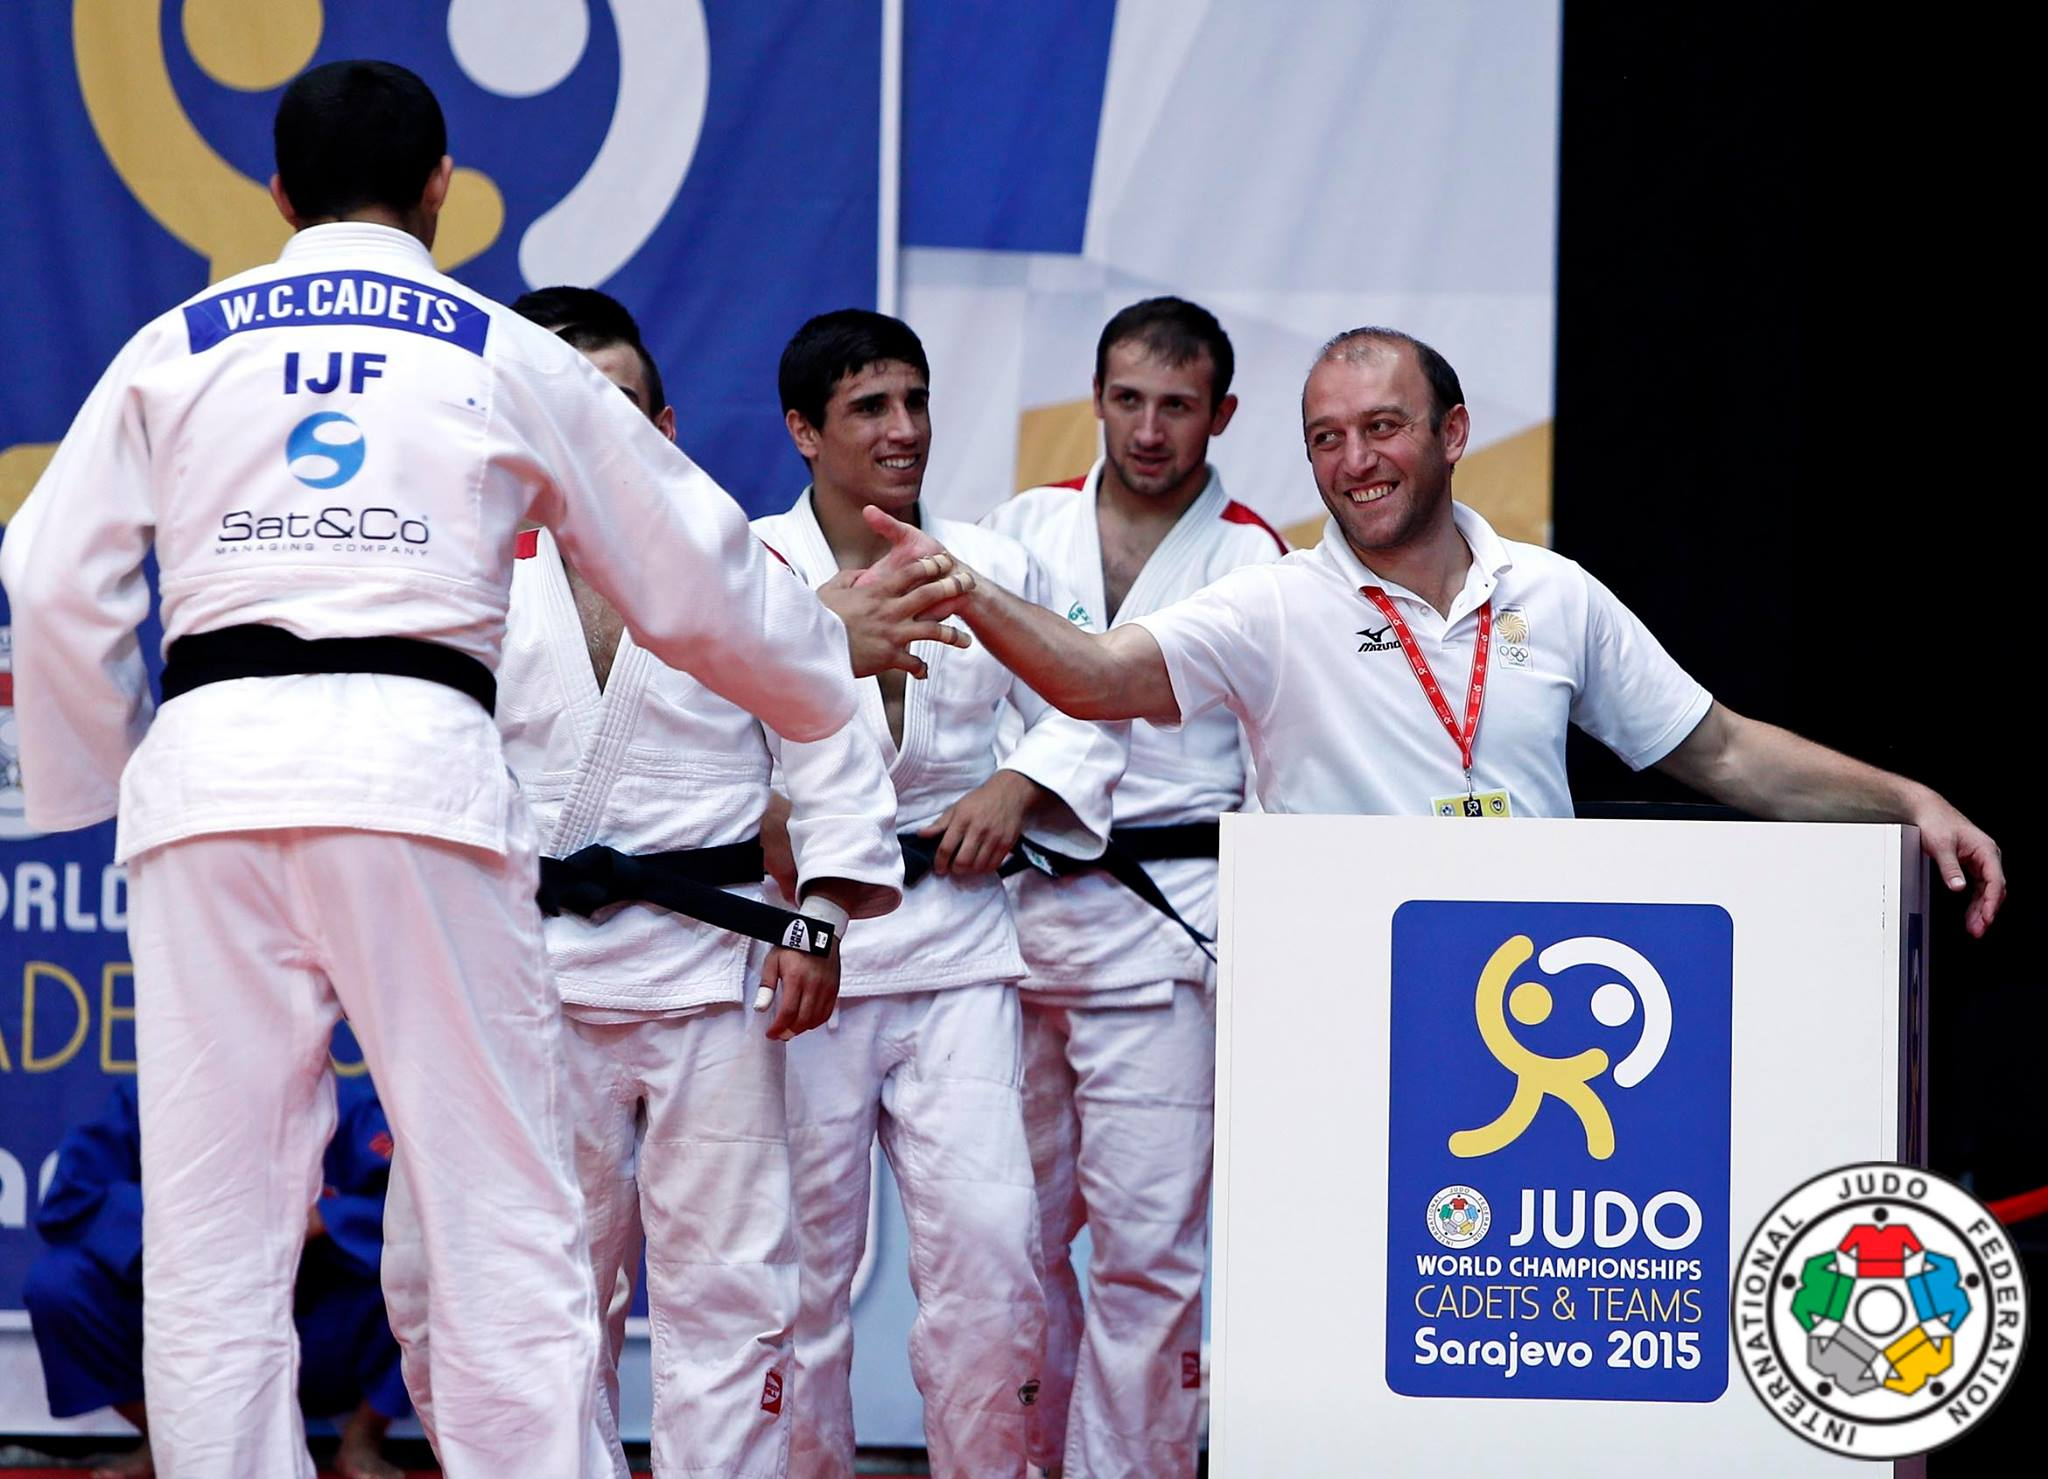 Bronze in the Team Championships